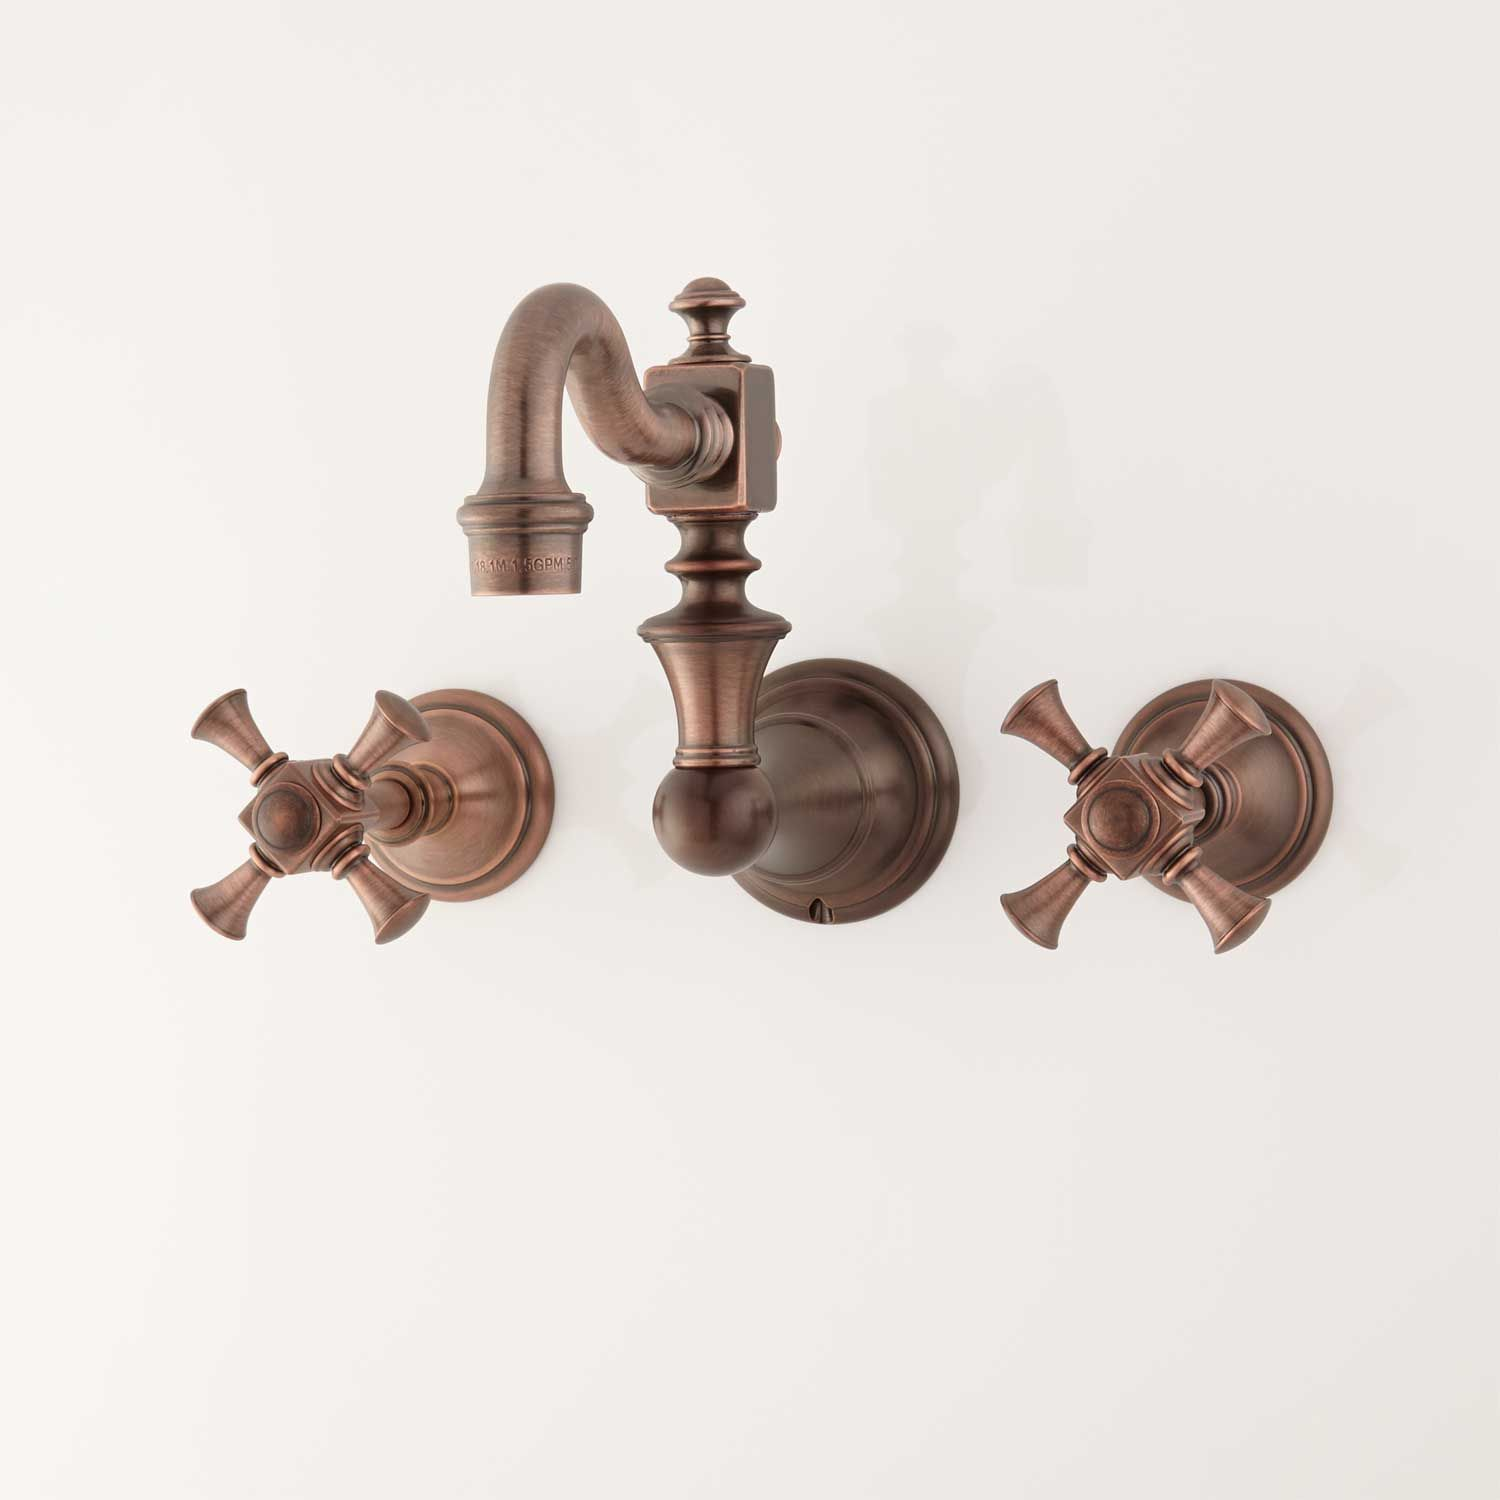 Vintage kitchen faucets wall mount lawn and garden carts